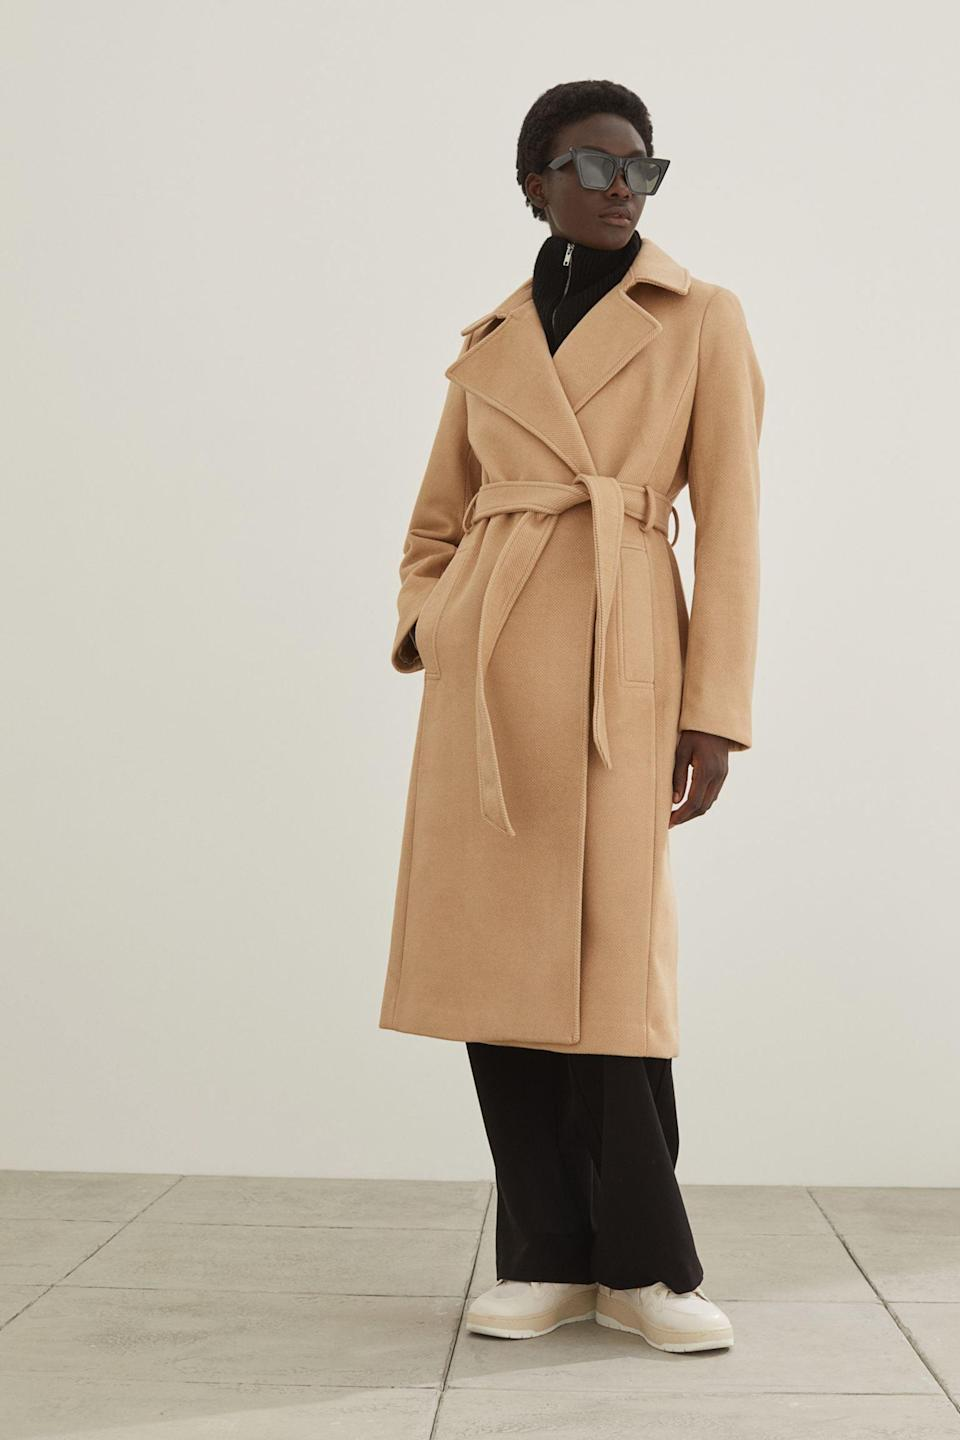 <p>For a timeless coat you'll turn to season after season, direct your attention to this <span>H&amp;M Tie Belt Coat</span> ($60). It packs a lot of attitude, ensuring you look put-together every time you slip into it.</p>